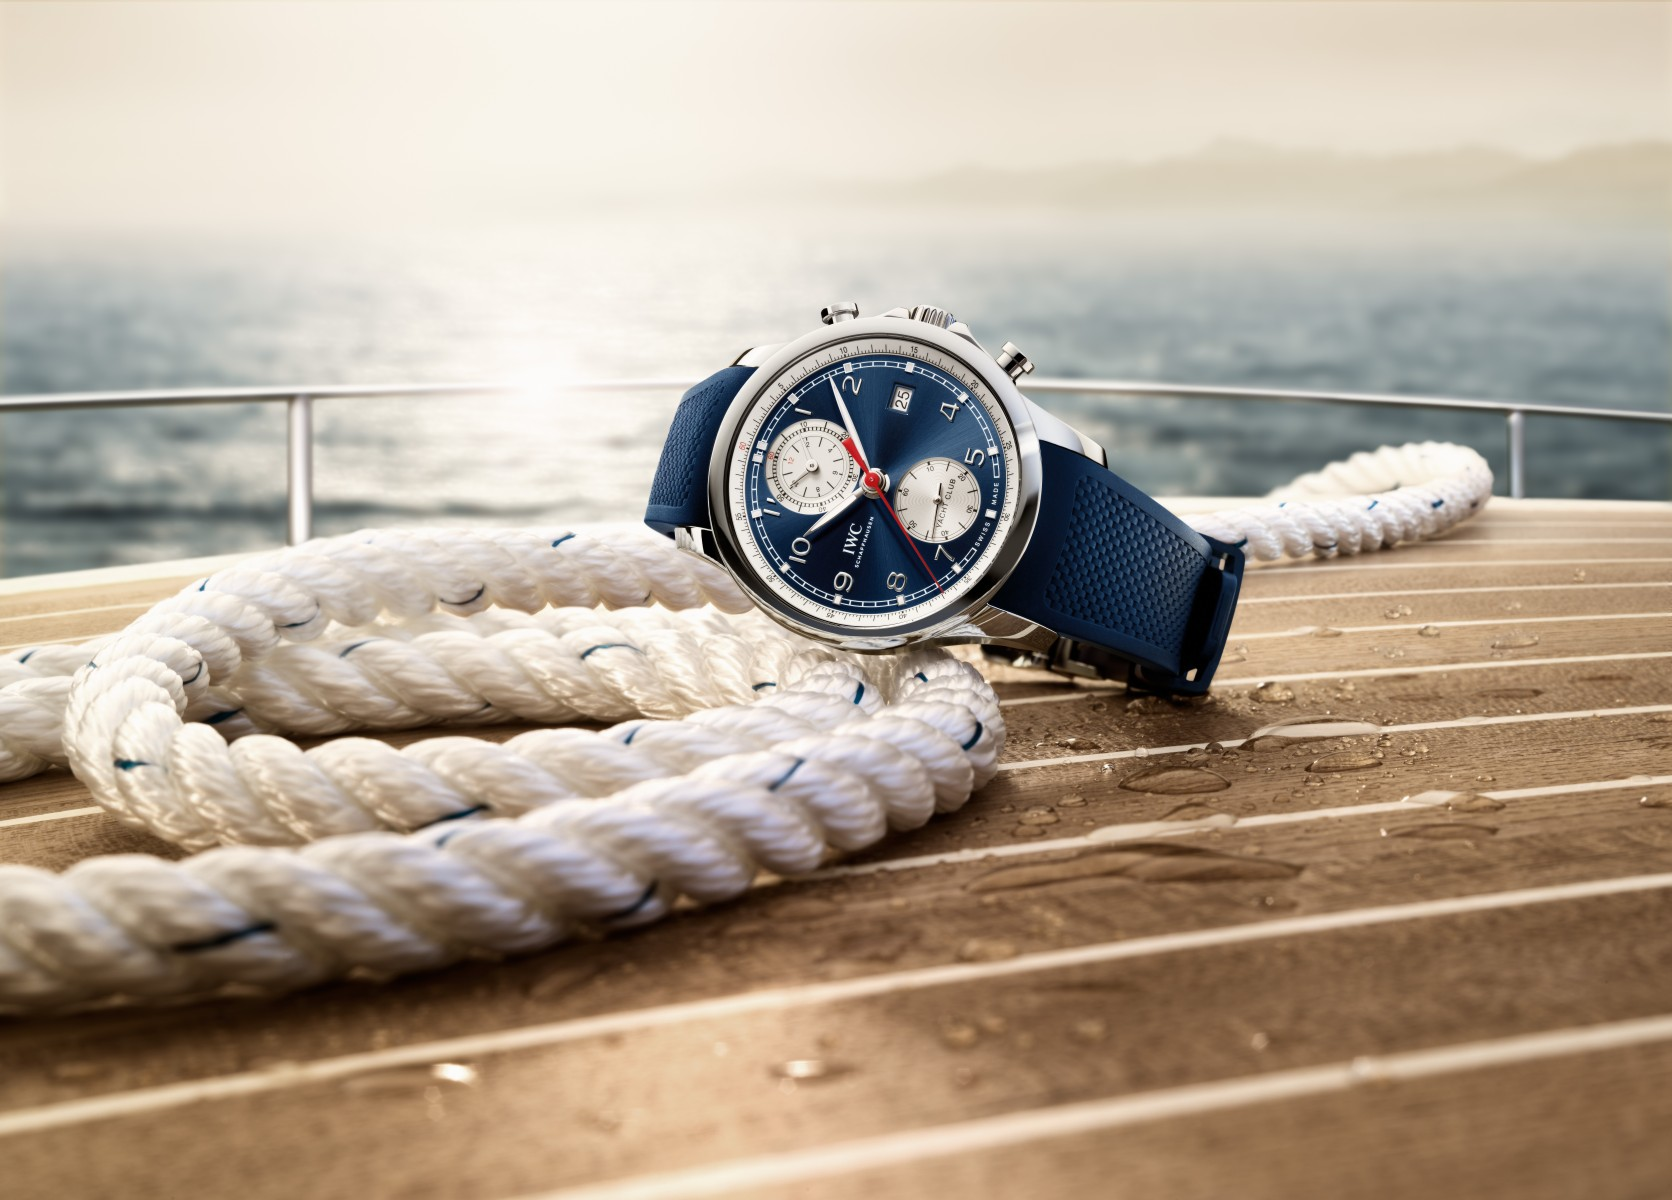 Portugieser Yacht Club Chronograph (Ref. IW390507) on the ropes